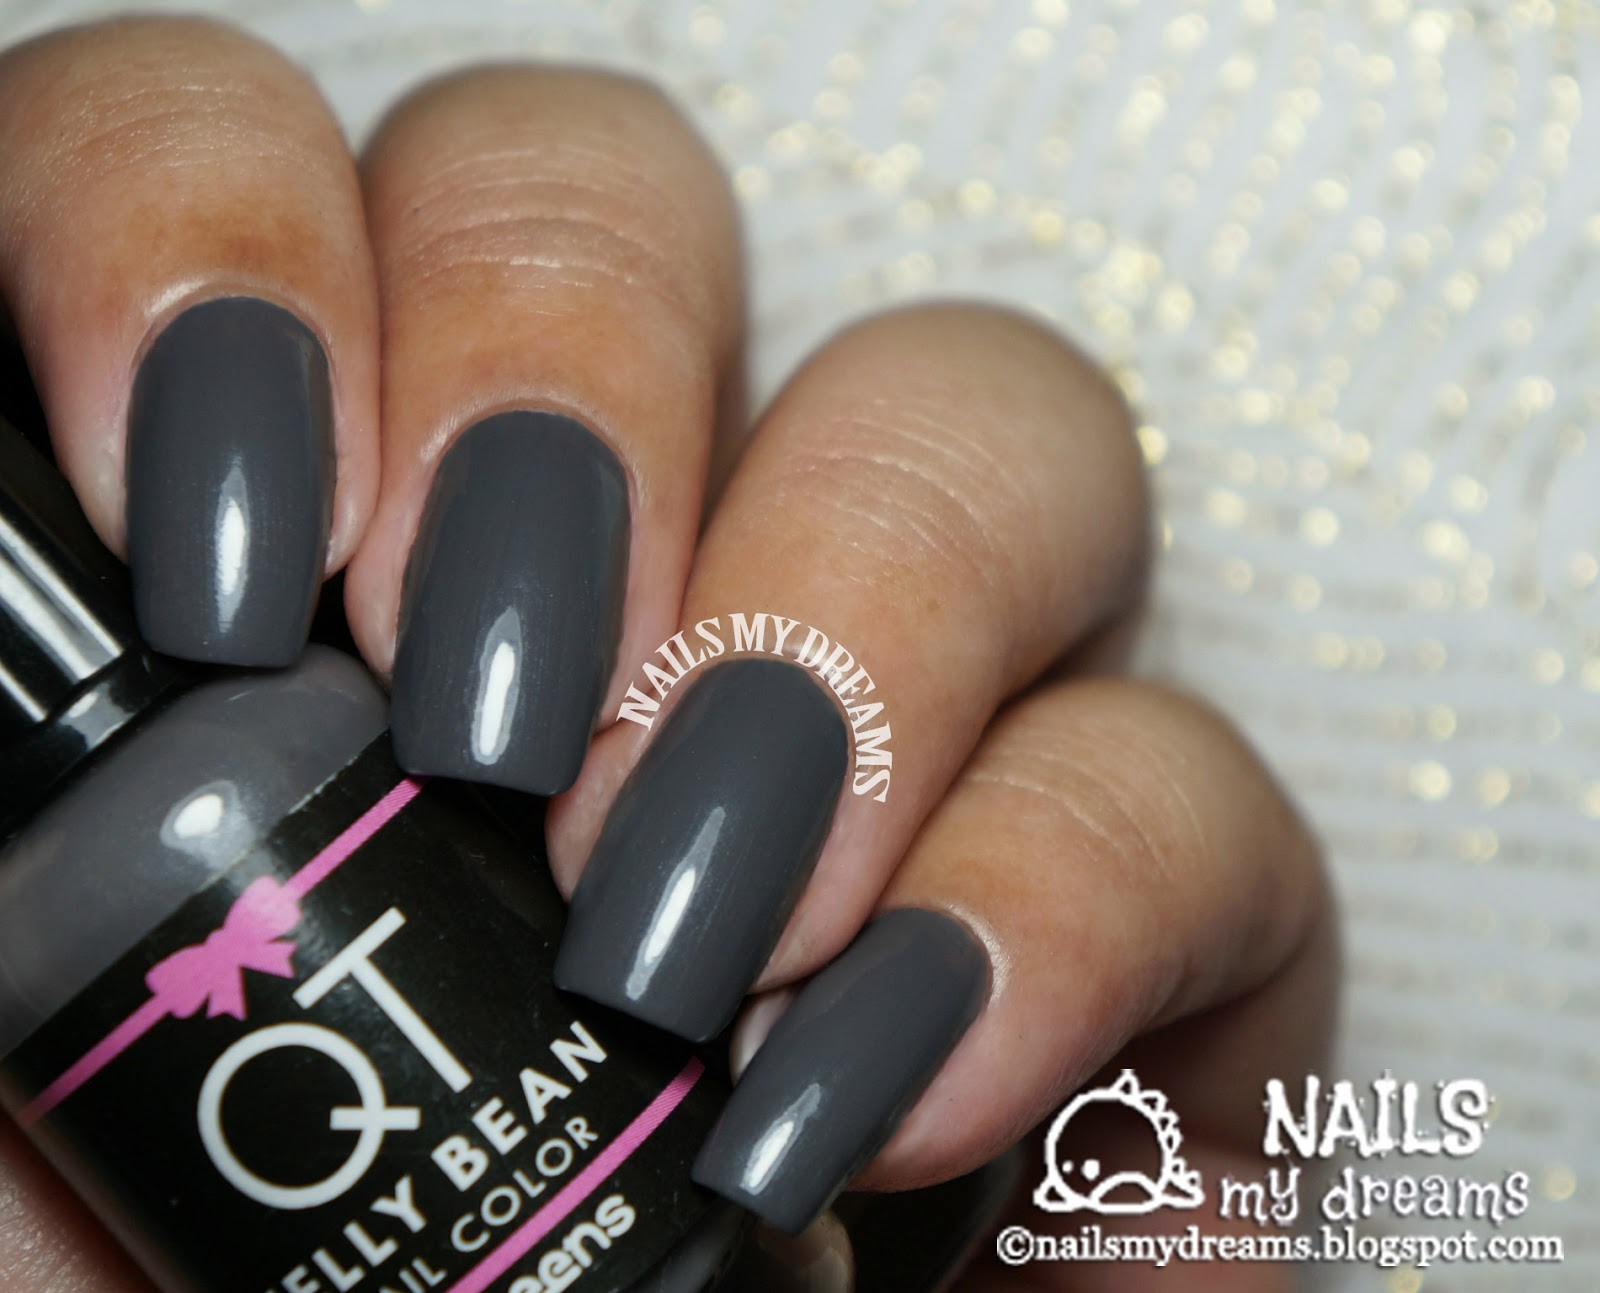 Nails My Dreams: QT Nail Polishes by Weens - Eight Random Swatches